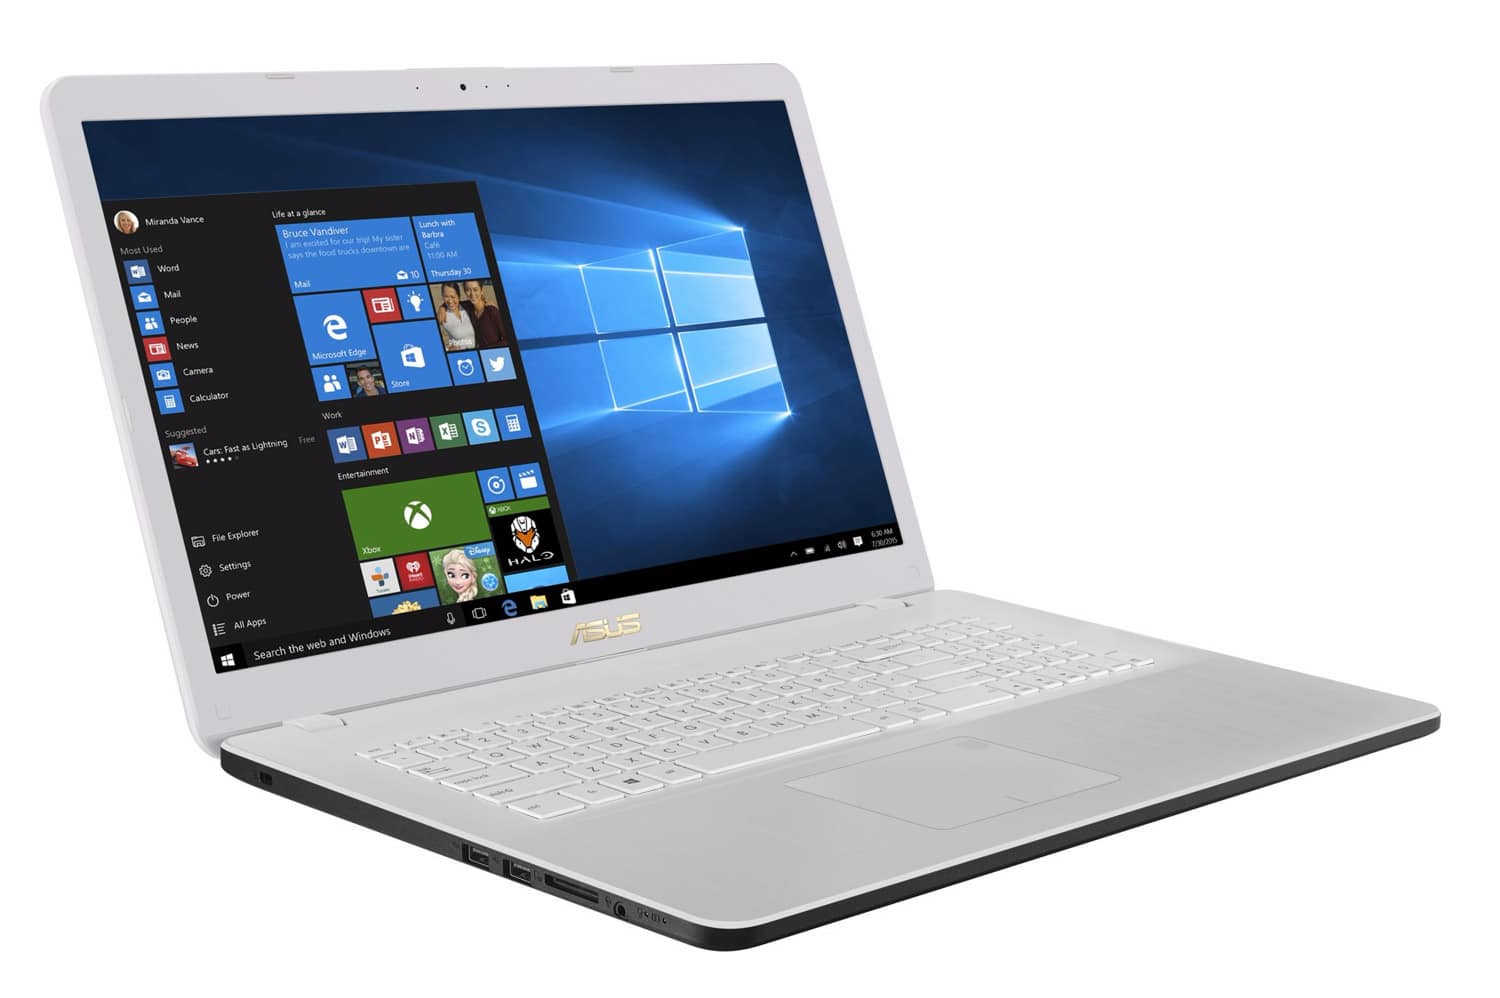 "Asus R702UB-BX103T, PC portable blanc 17"" 8 Go 1 To (489€)"